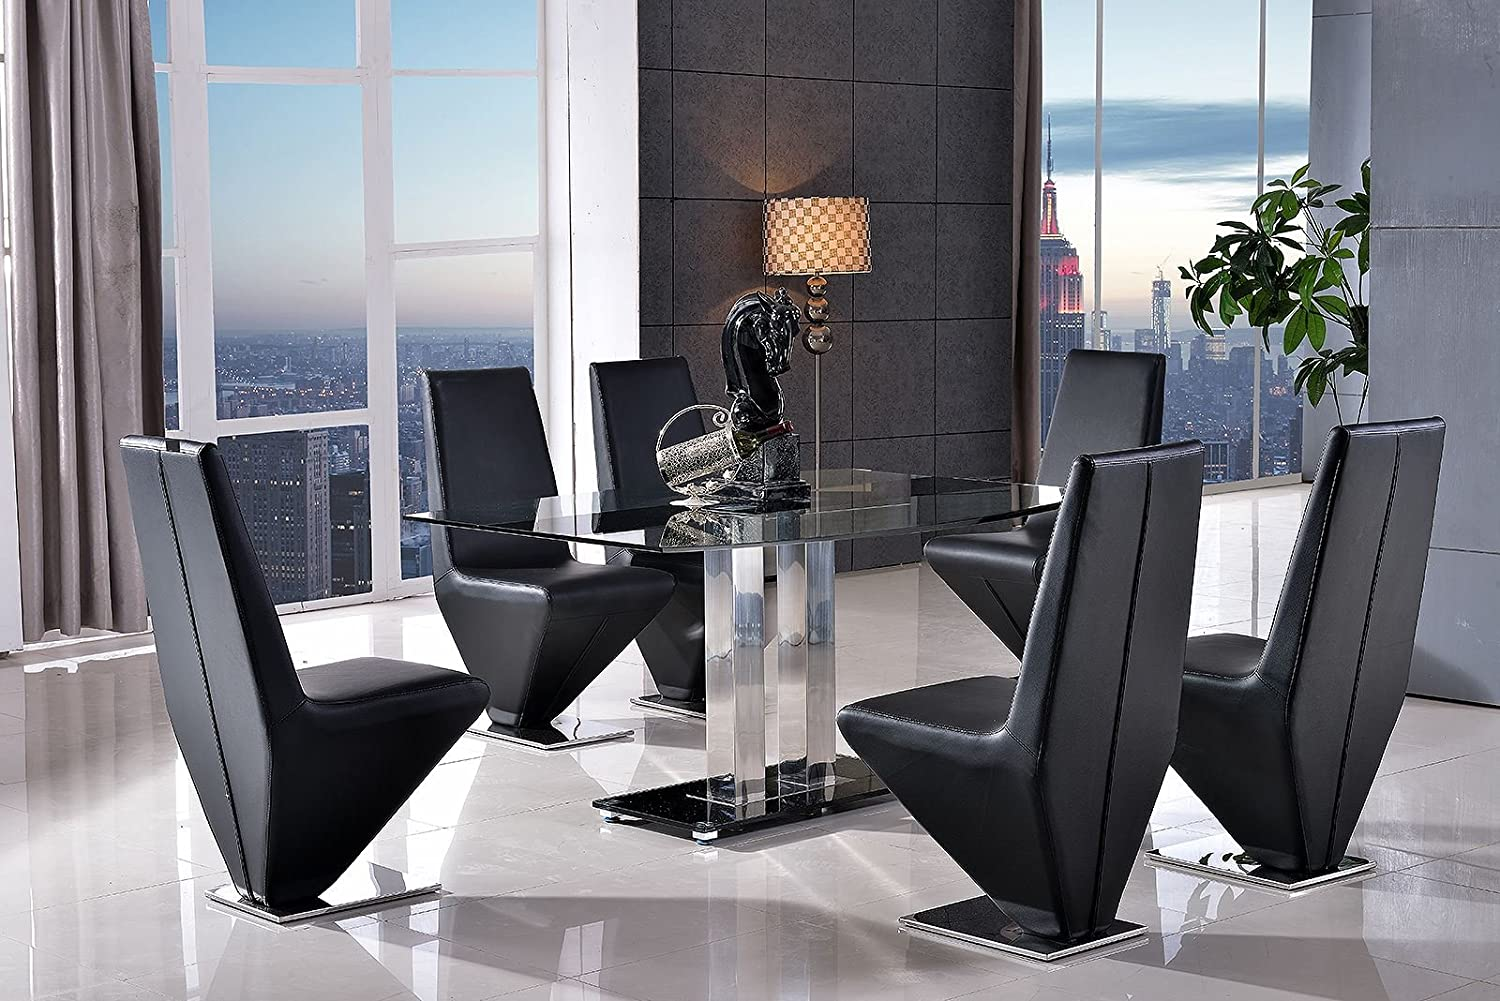 Modern furniture direct roma designer glass dining table 4 rita black chairs amazon co uk kitchen home